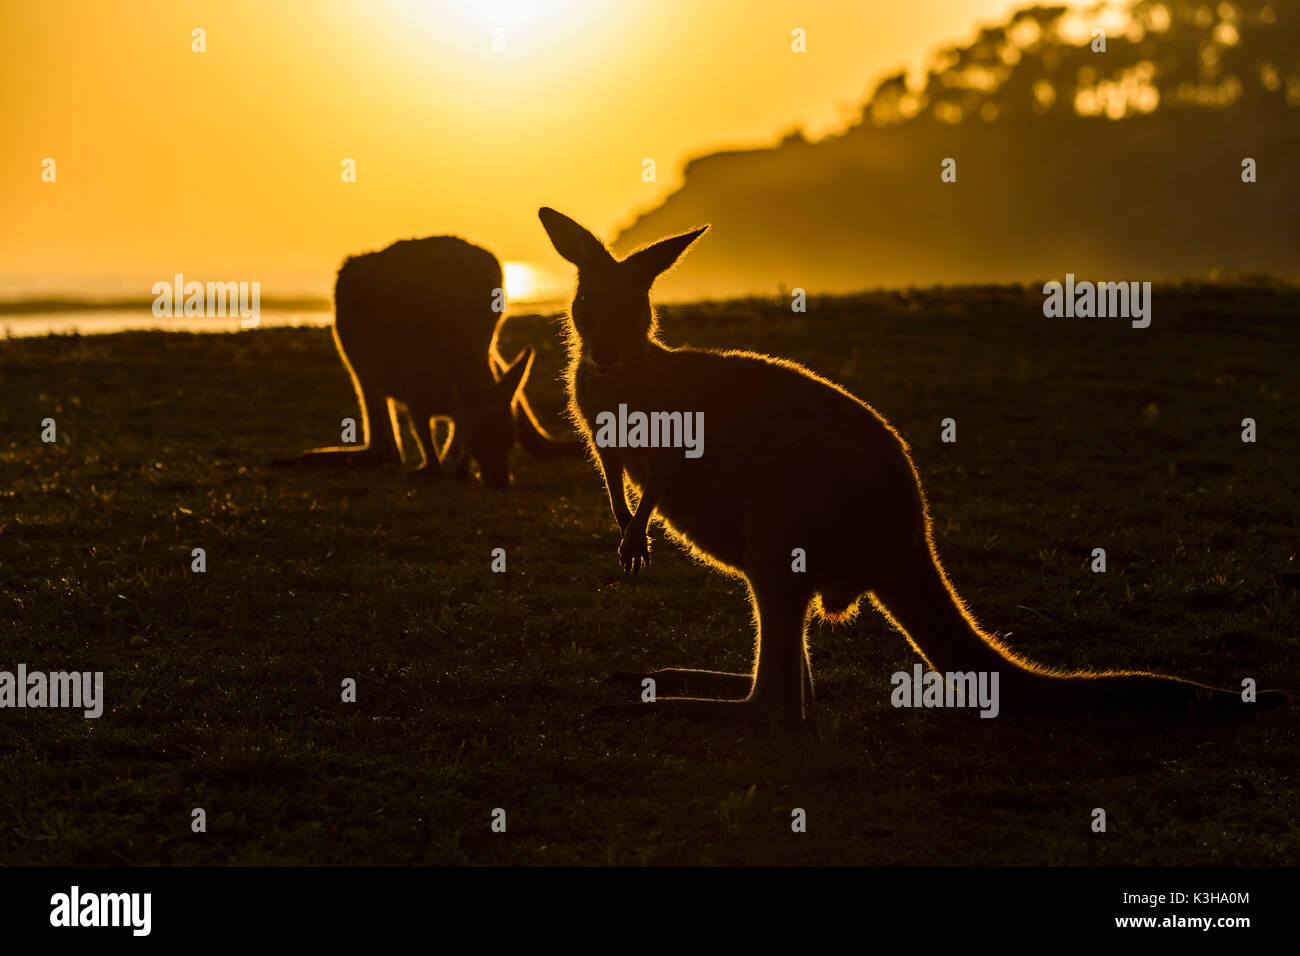 Grigio canguro, Macropus giganteus, due animali di Sunrise, Murramarang National Park, New South Wales, Australia Immagini Stock